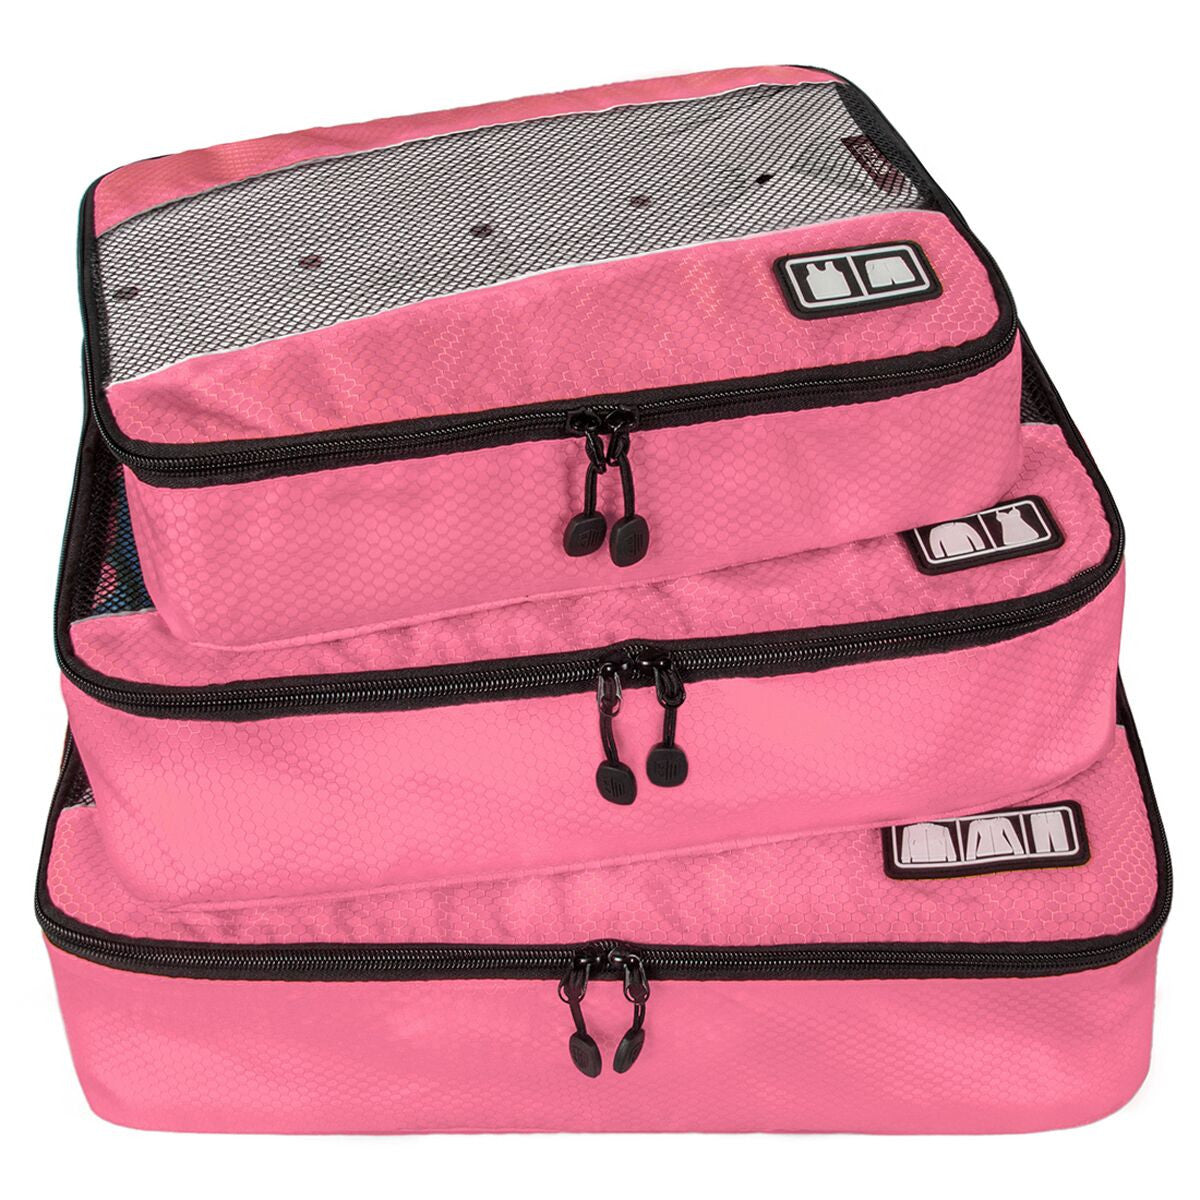 3 Piece Pink Packing Cubes Travel Accessories by BAGSMART - Rodco Global